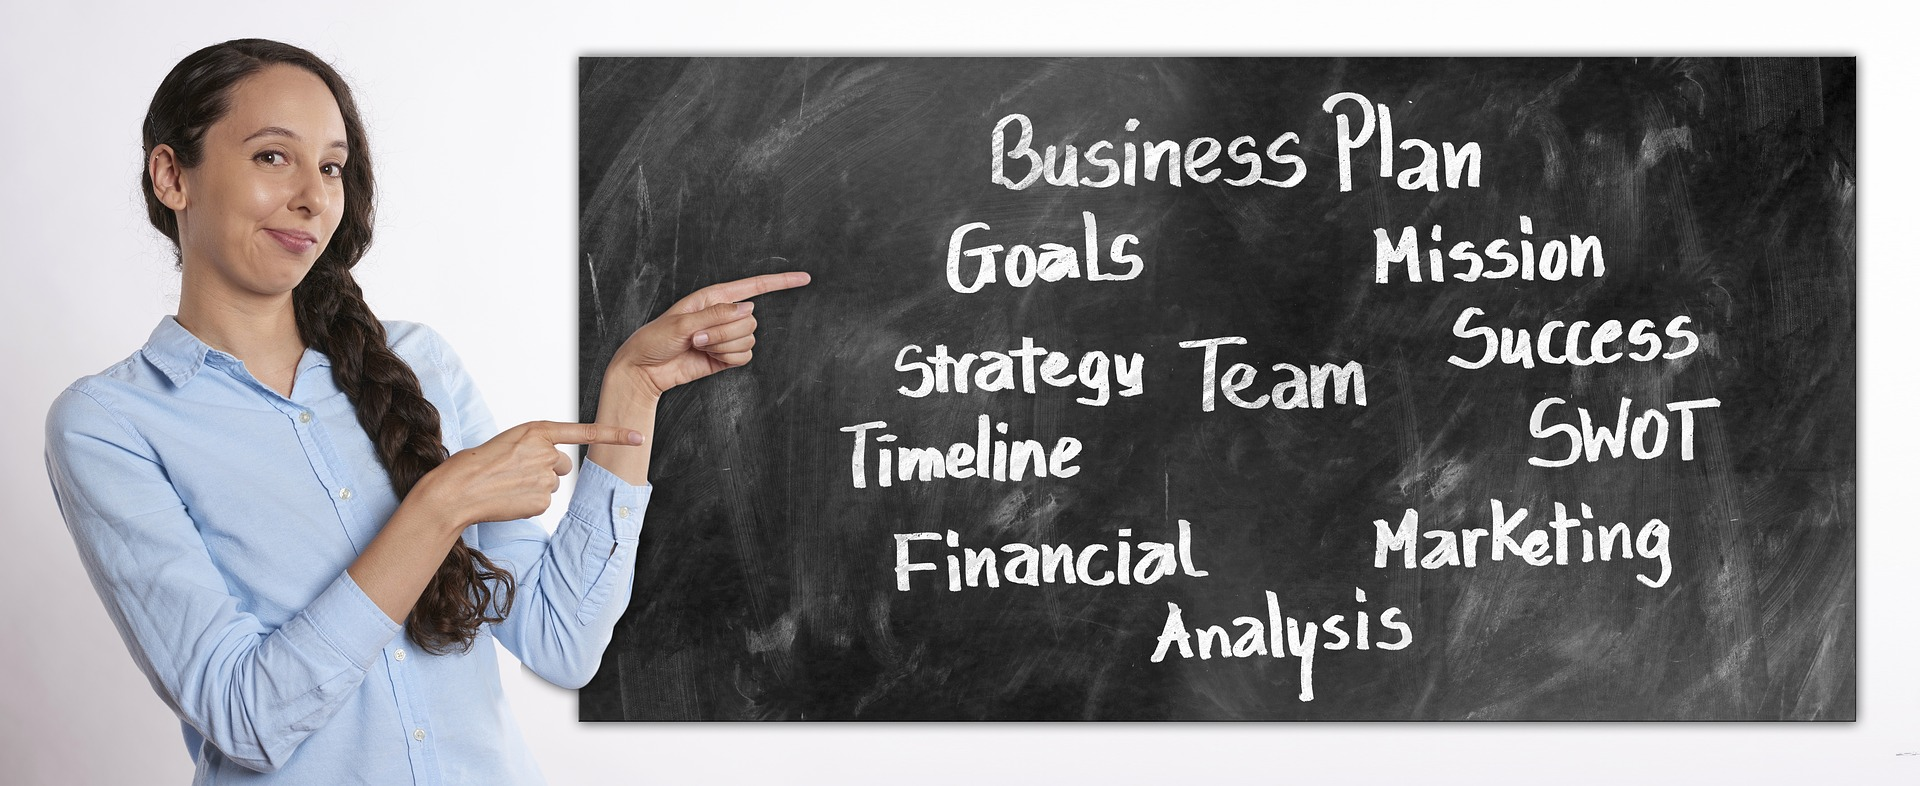 Improving Finances Might Start With SWOT Analysis, but Networking Takes You Further